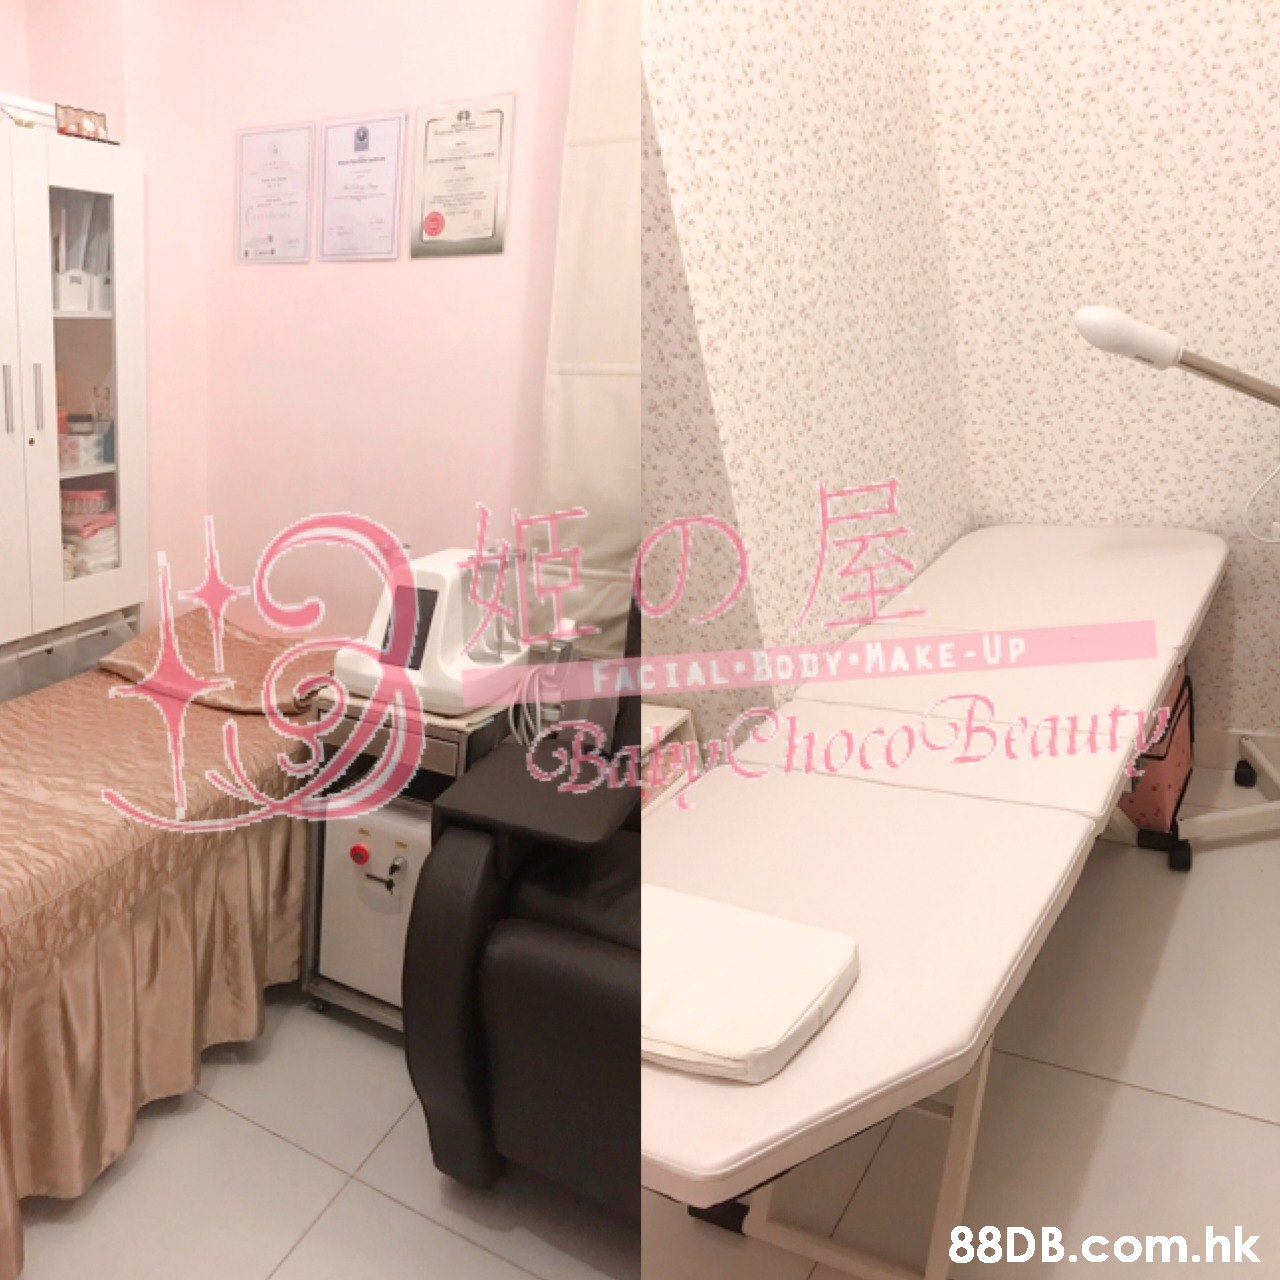 FACIAL BODY MAKE-UP GBacn hoco Beaut .hk  Property,Room,Pink,Product,Furniture